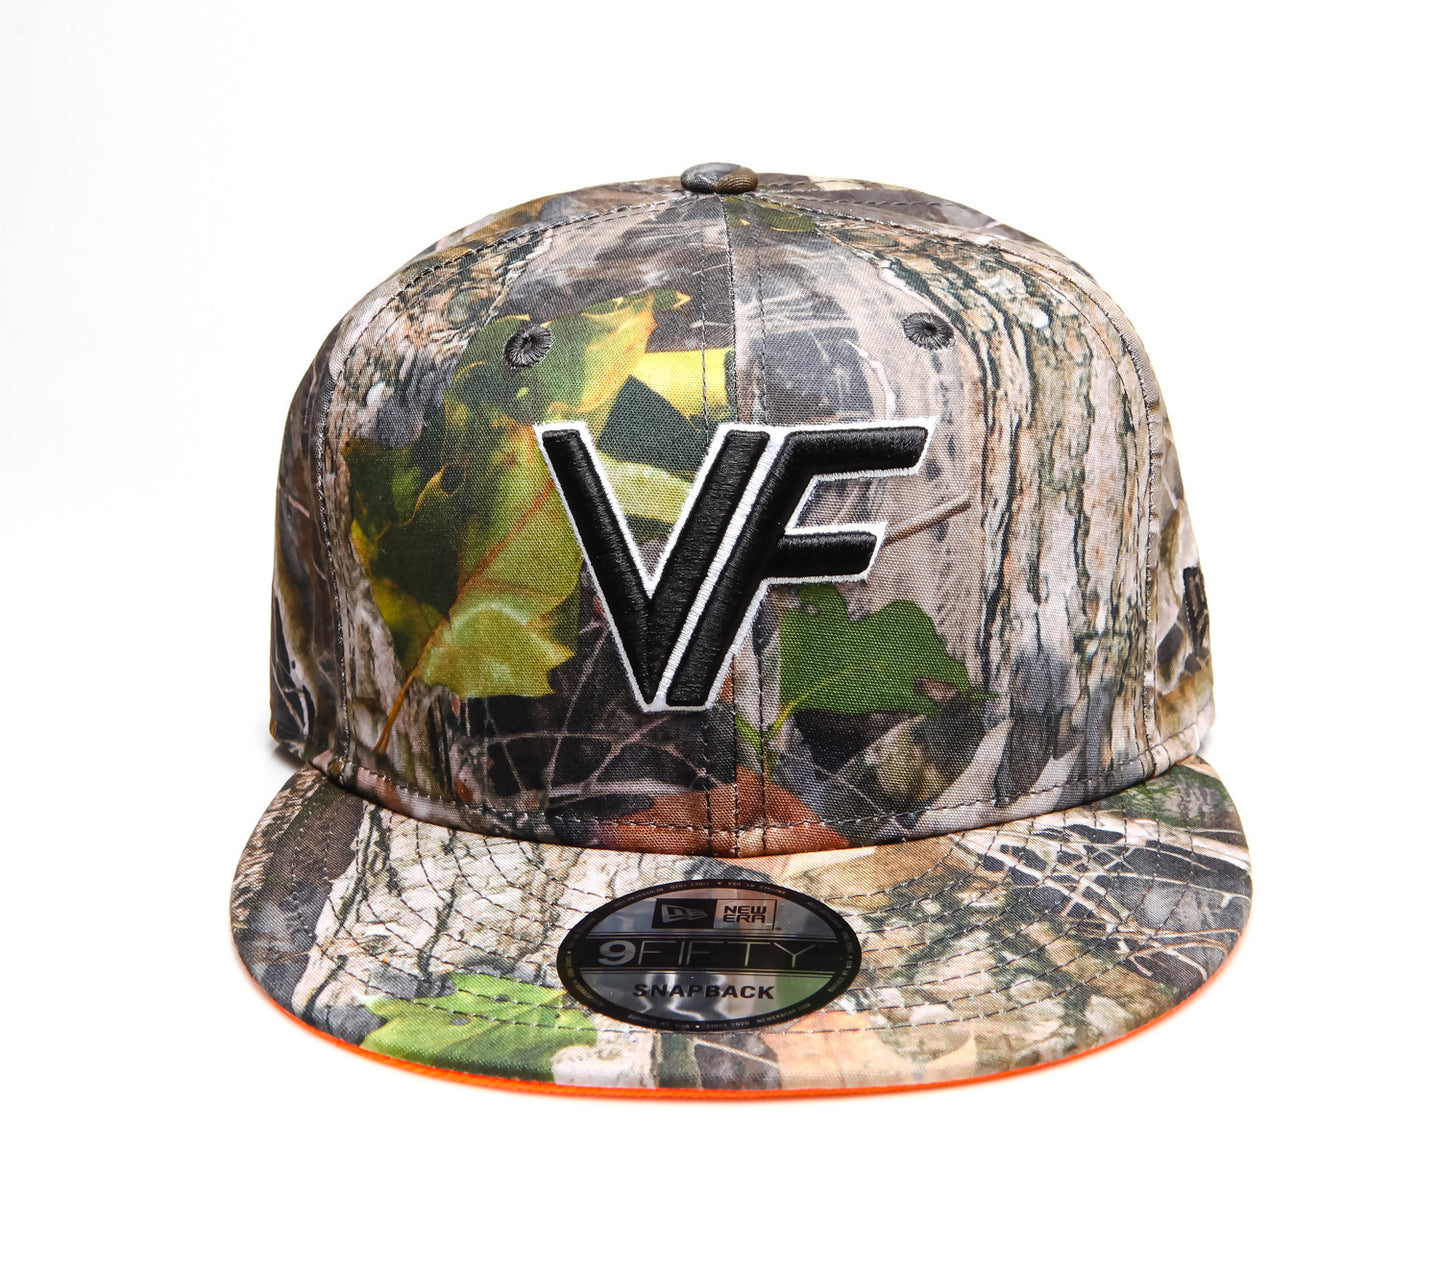 VF Camouflage II SnapBack 1, The Vintage Frames Company , glasses frames, eyeglasses online, eyeglass frames, mens glasses, womens glasses, buy glasses online, designer eyeglasses, vintage sunglasses, retro sunglasses, vintage glasses, sunglass, eyeglass, glasses, lens, vintage frames company, vf